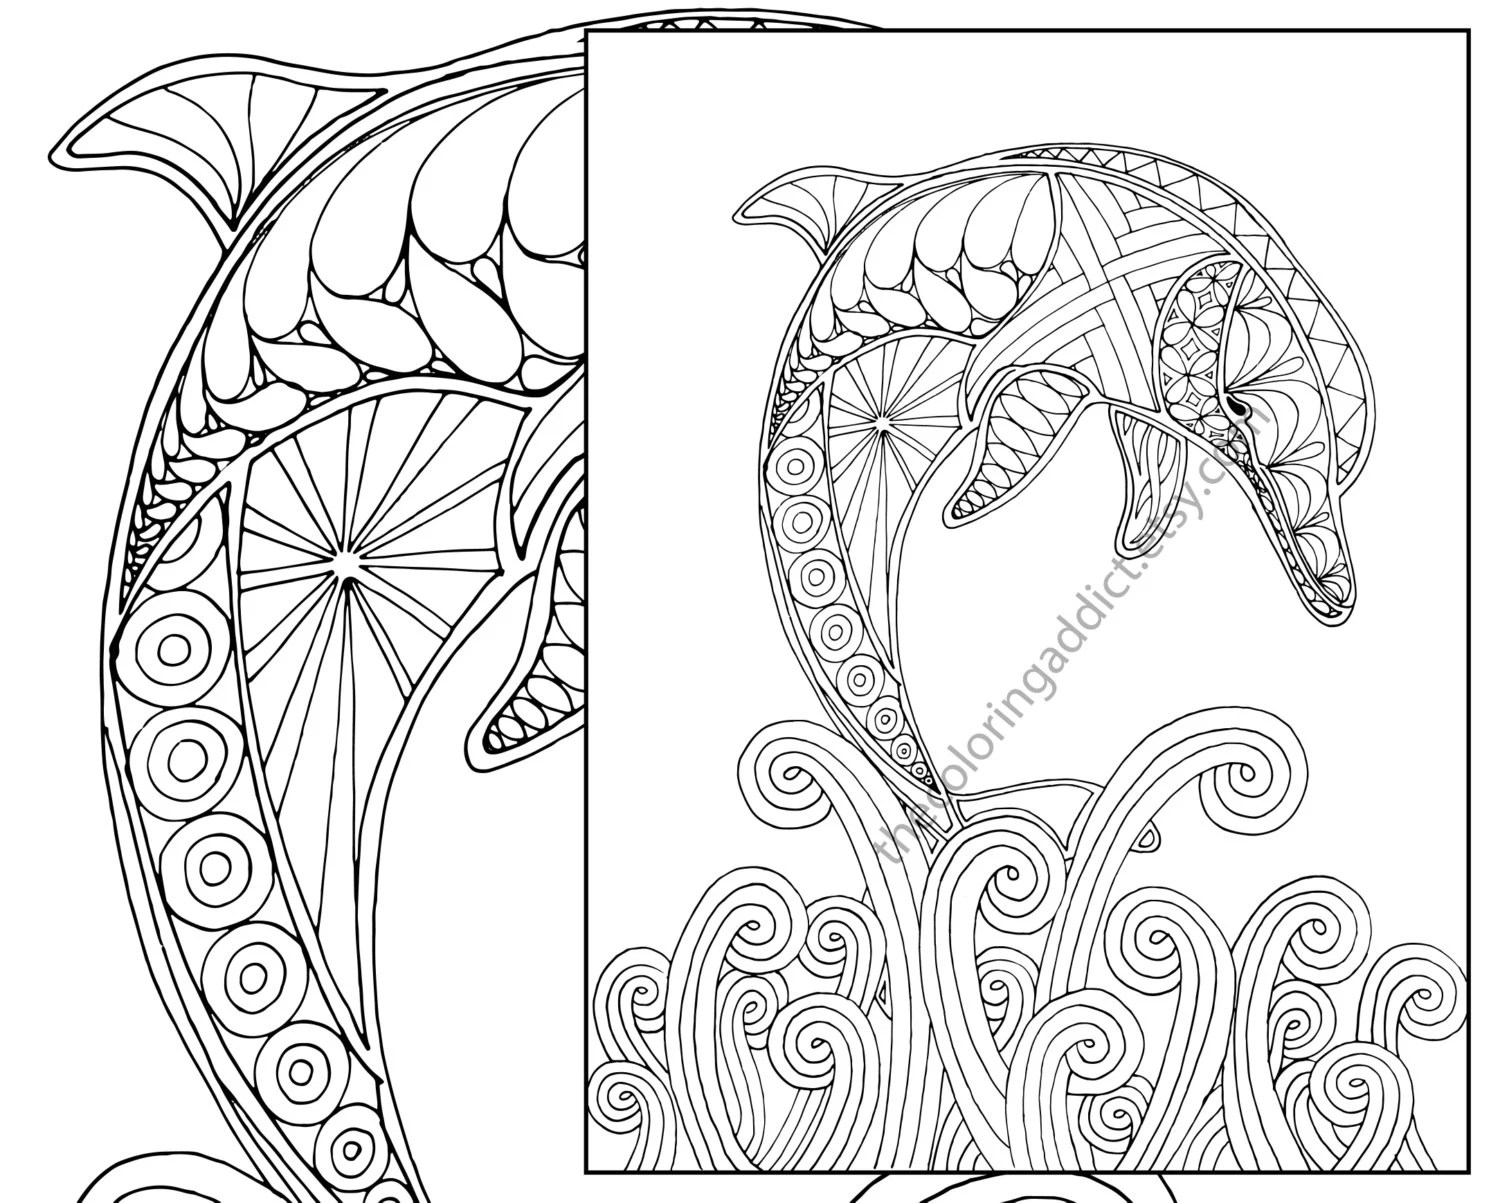 Dolphin Coloring Page Adult Coloring Sheet Nautical